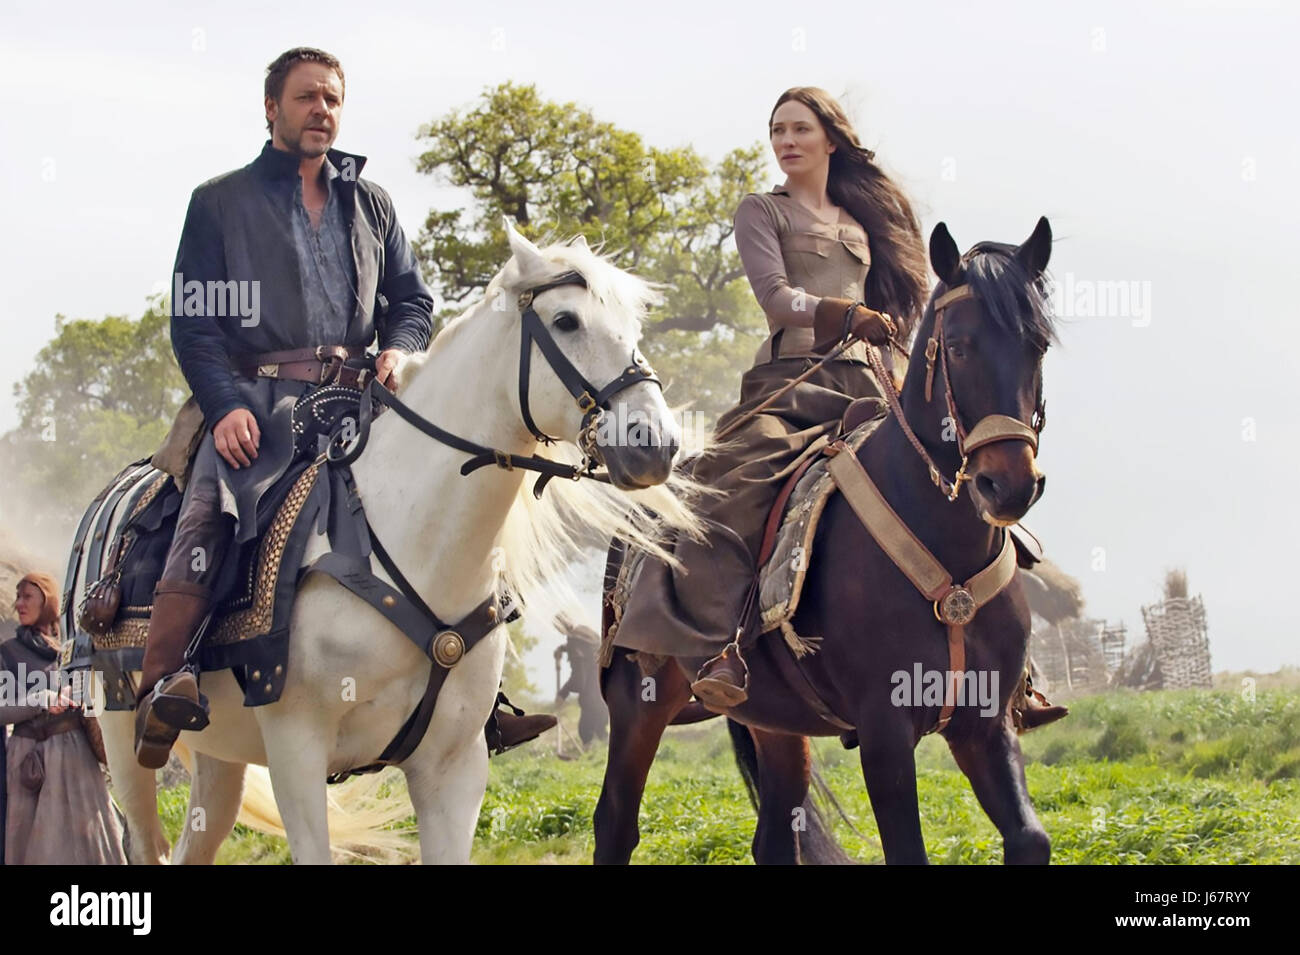 ROBIN HOOD 2010 Universal film with Russell Crowe and Cate Blanchett - Stock Image